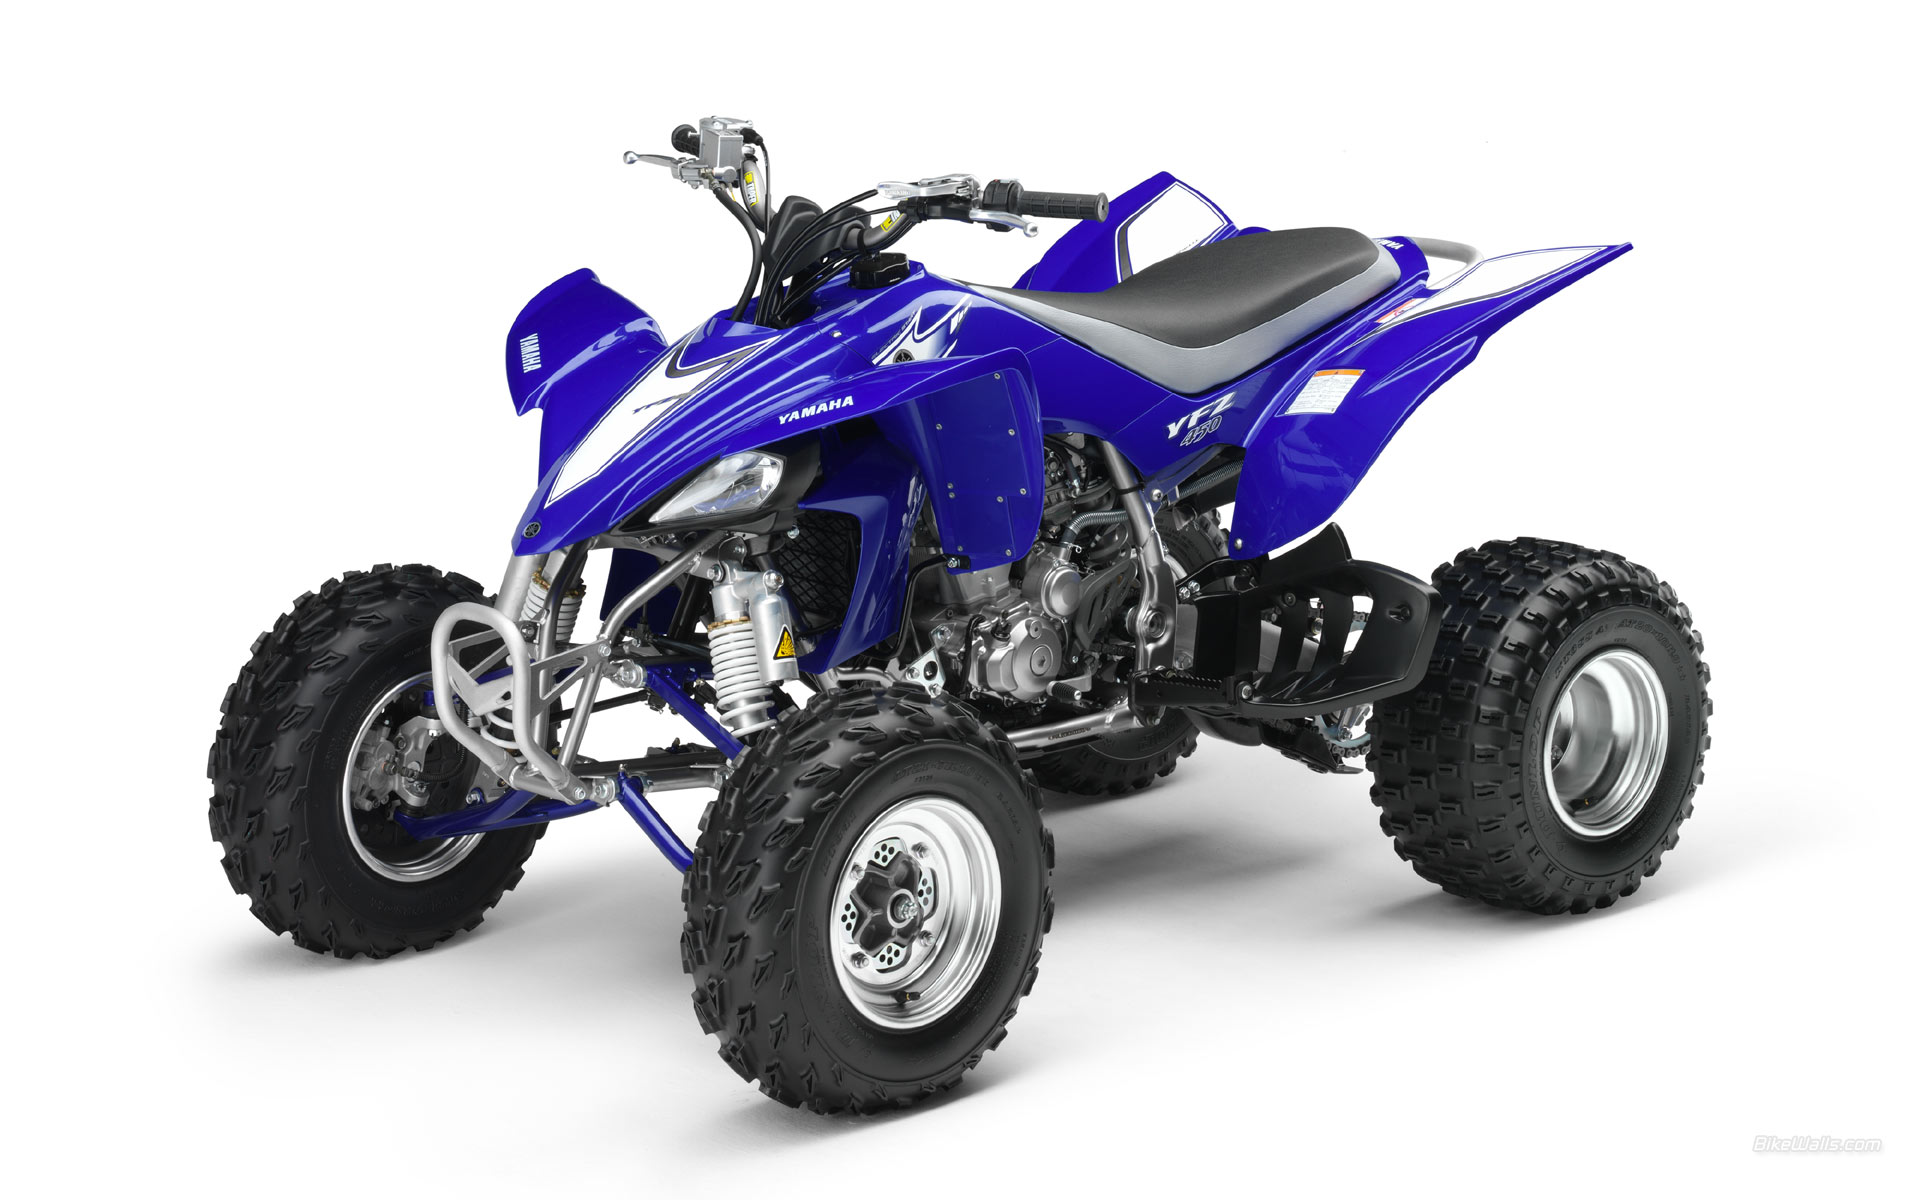 Yfz 450 For Sale Related Keywords & Suggestions - Yfz 450